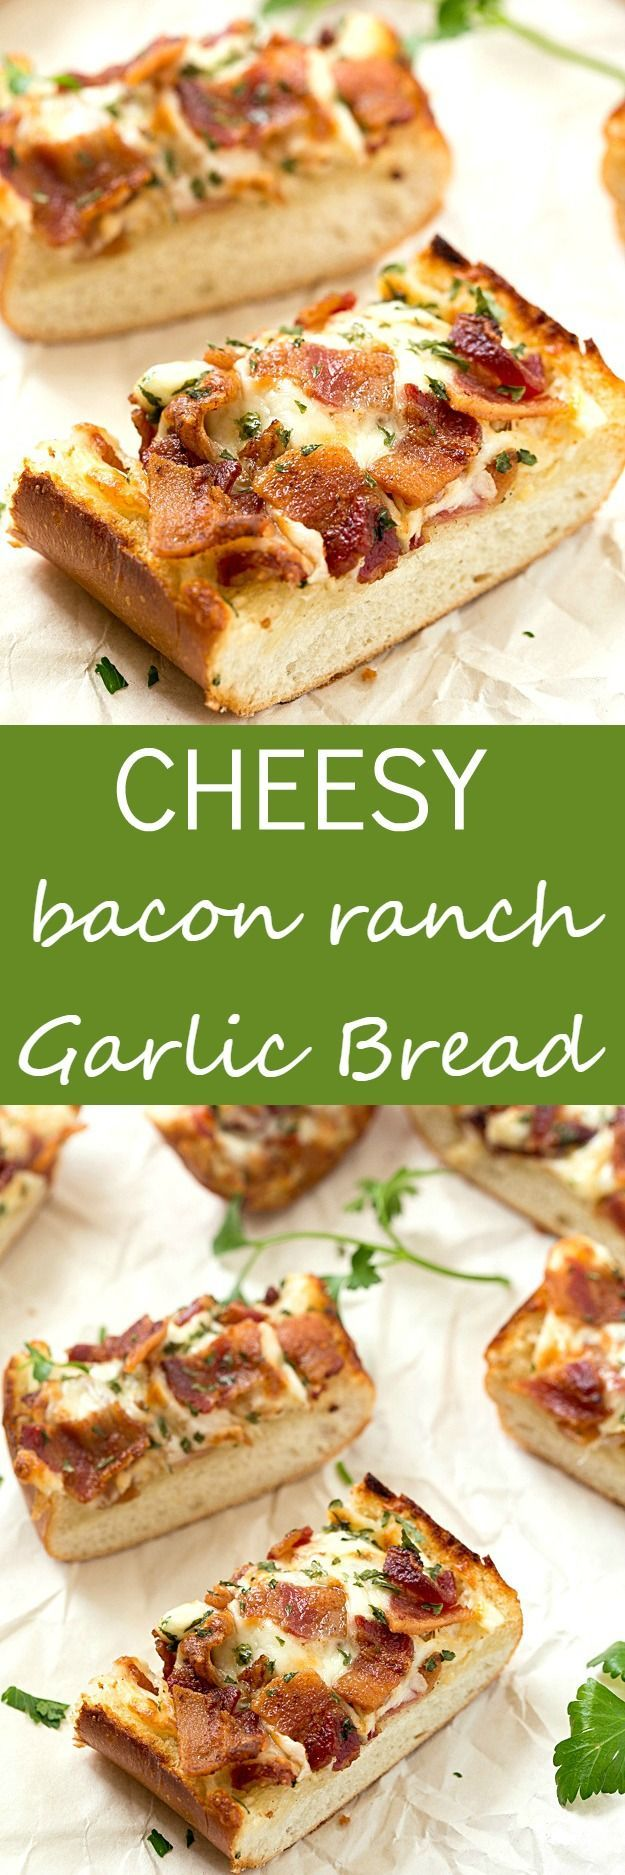 Cheesy Bacon Ranch Garlic Bread - Not just another cheesy garlic bread recipe! This bread is fantastic, and we were able to stop eating it! With a few changes, you can have homemade, and this easy garlic bread is taken to a whole new level! The best garlic spread with the addition of ranch seasoning!